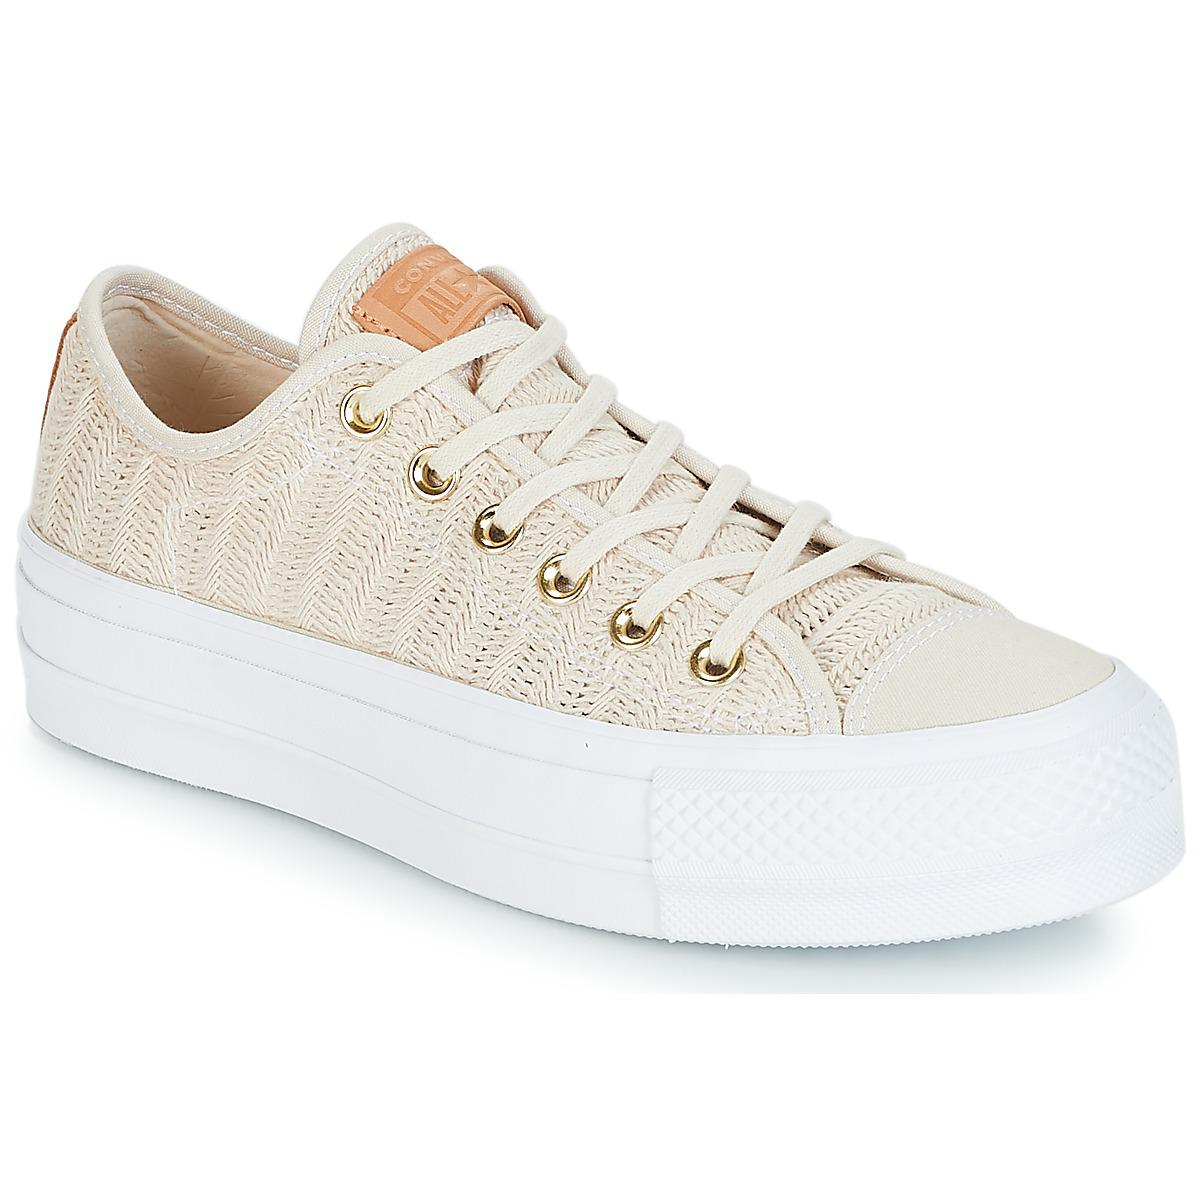 c6fccb125b10 Converse Chuck Taylor All Star Lift-ox Shoes (trainers) in Natural ...